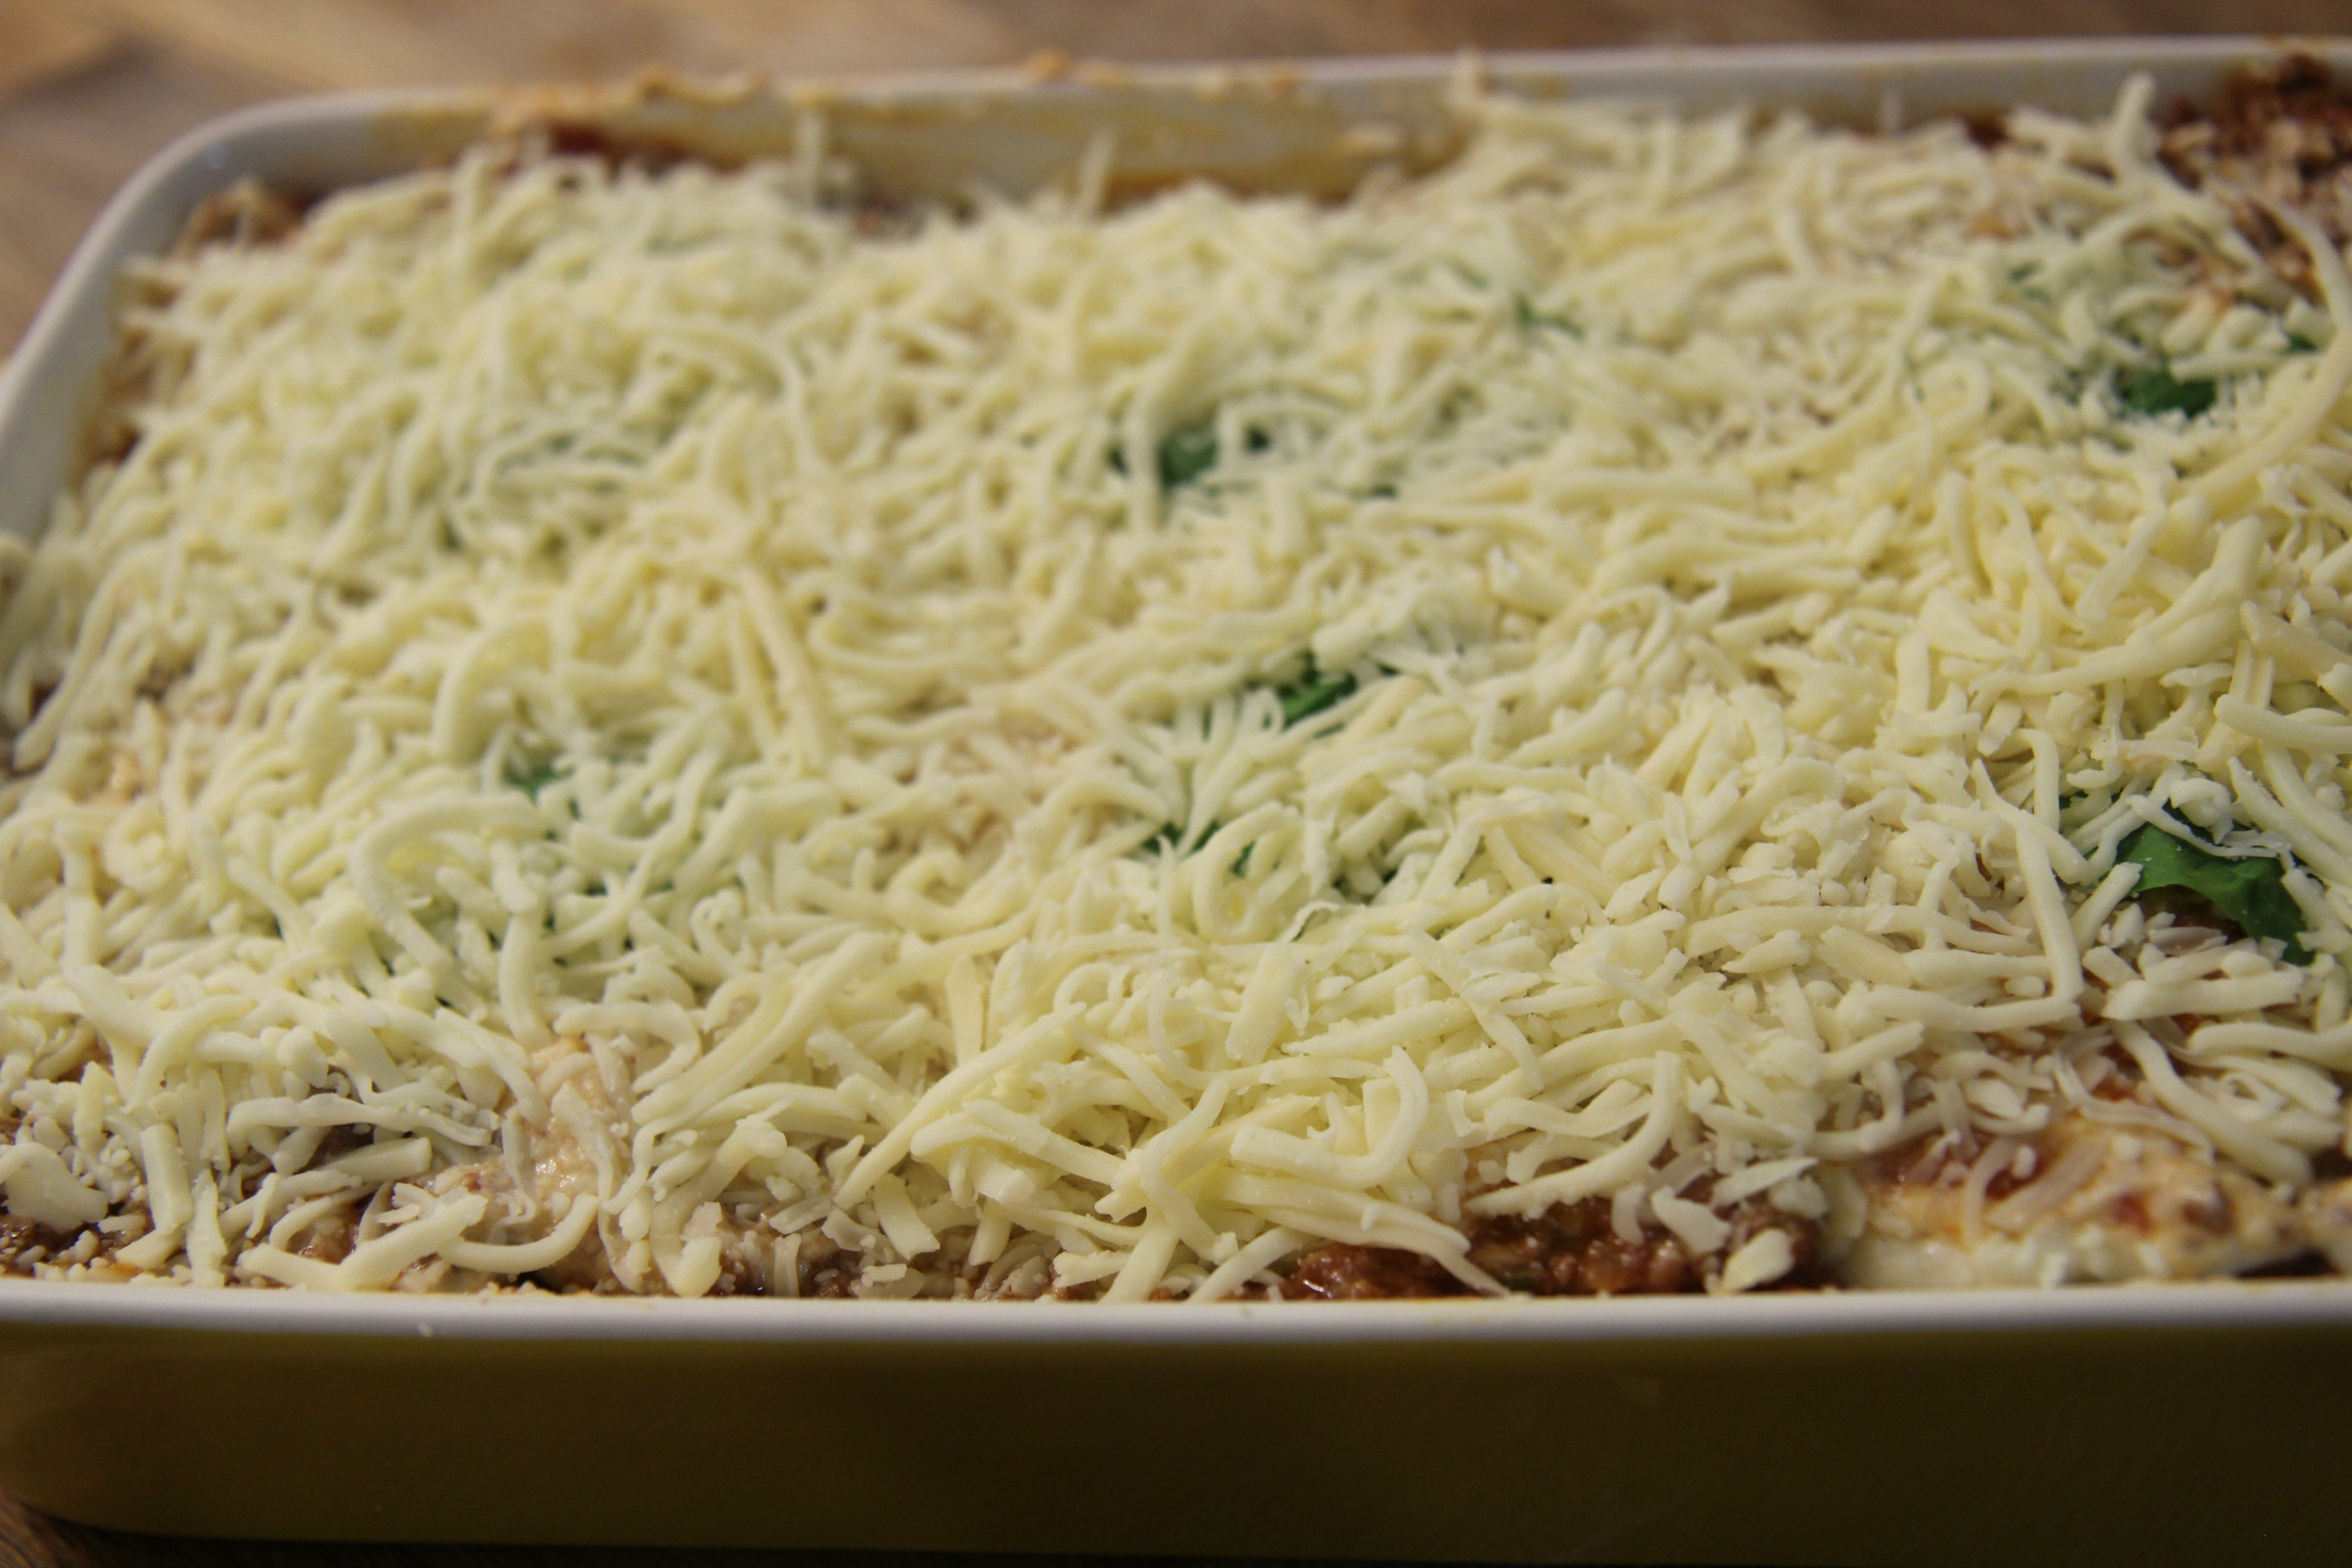 Pile on the cheese! I topped my lasagna with creamy italian cheese before baking in the oven.